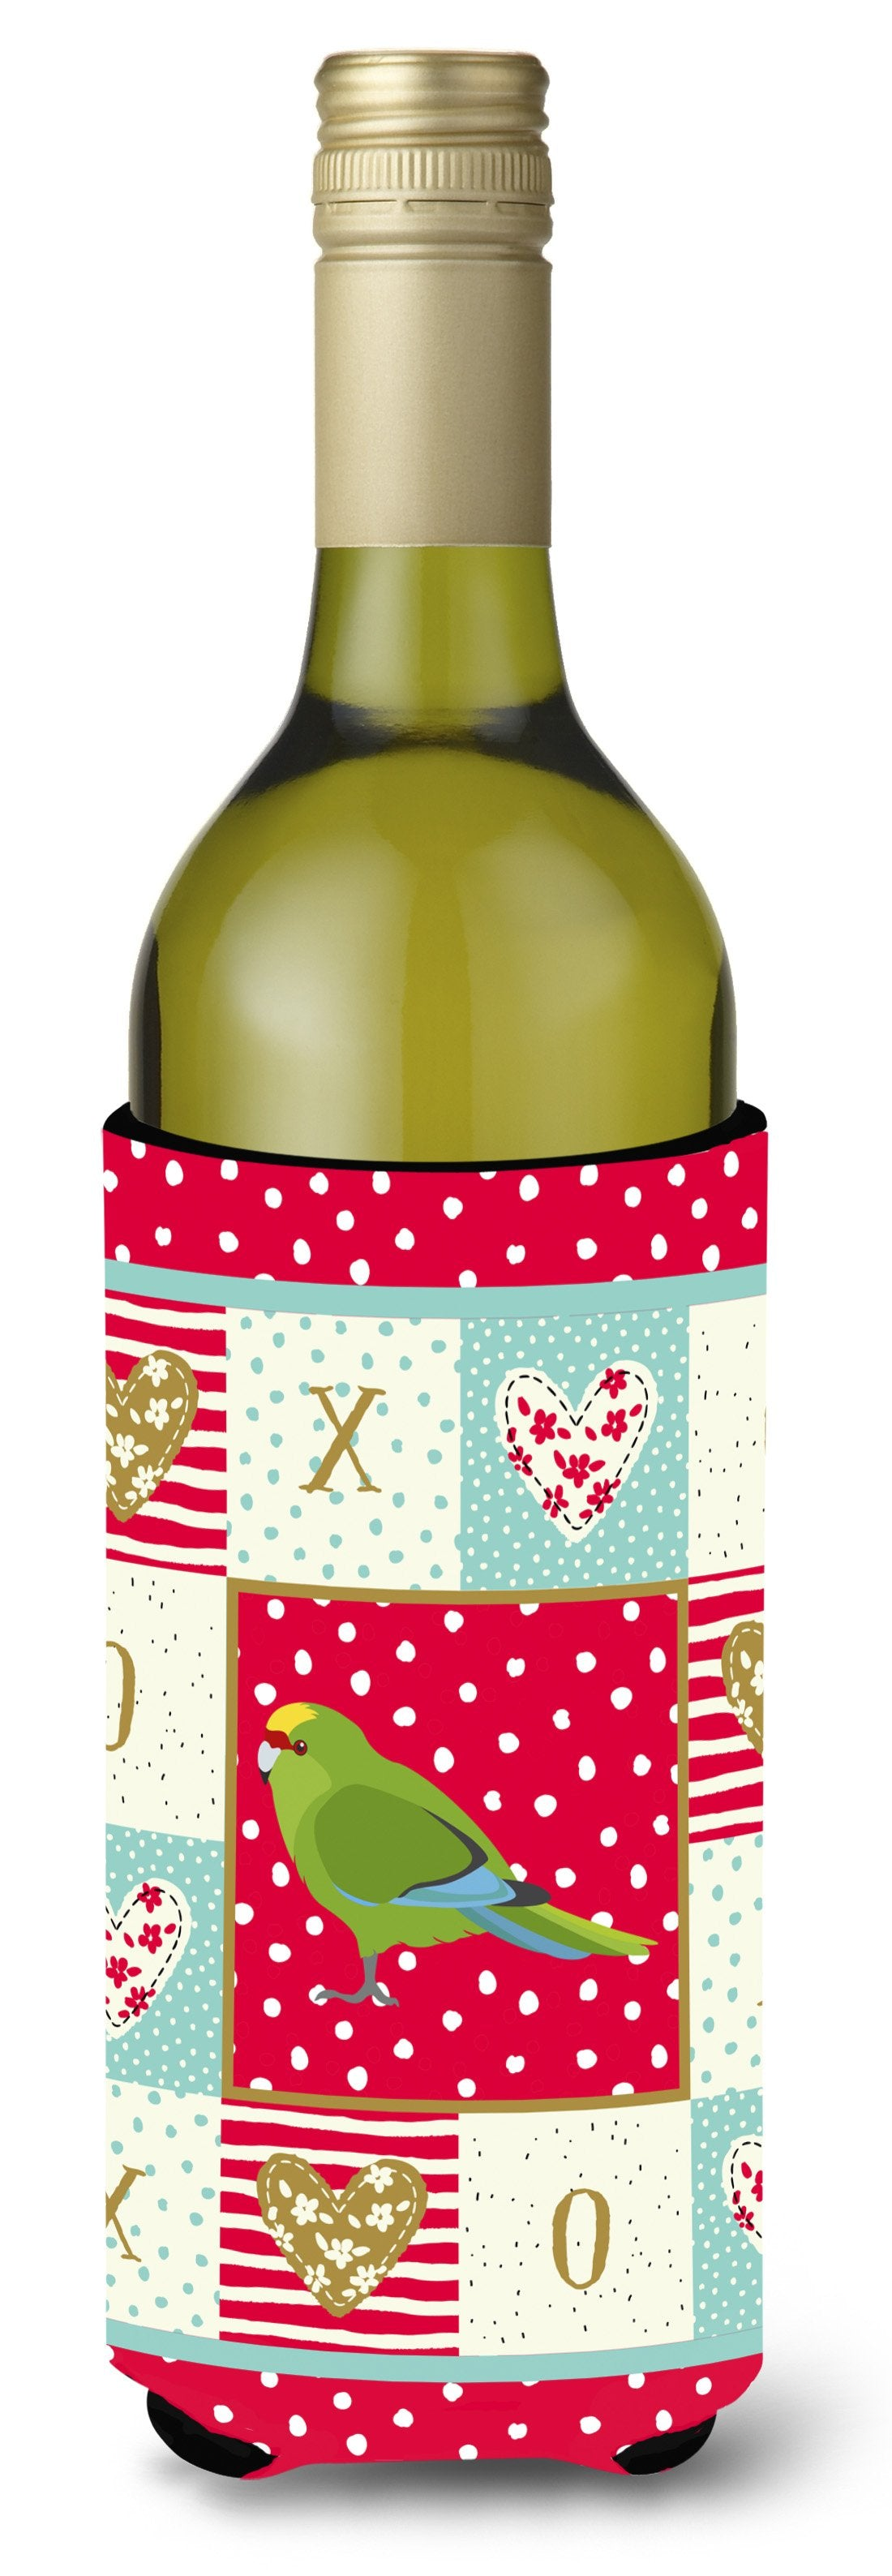 New Zealand Parakeet Love Wine Bottle Hugger CK5524LITERK by Caroline's Treasures